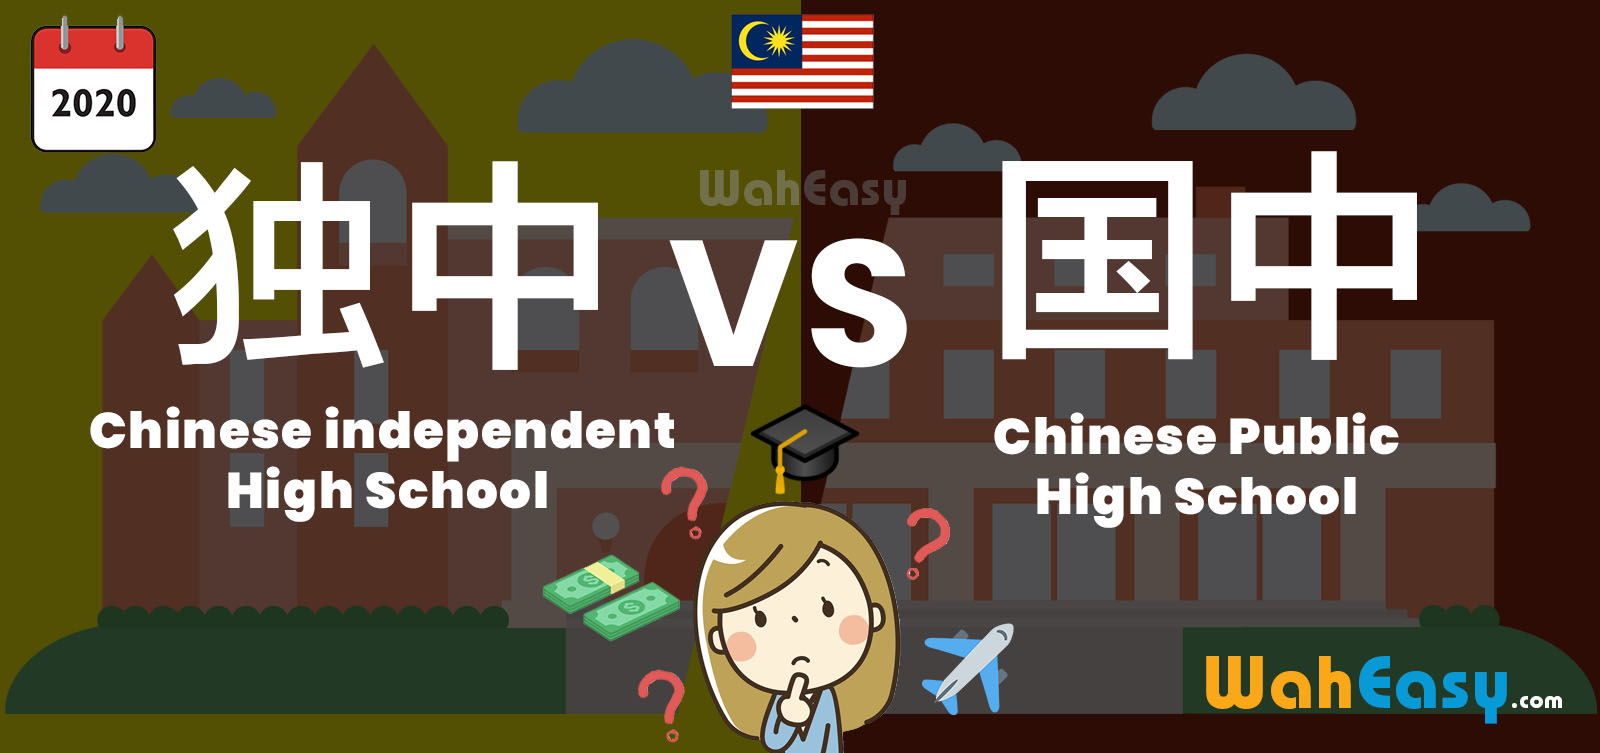 chinese-independent-high-school-normal-public-school